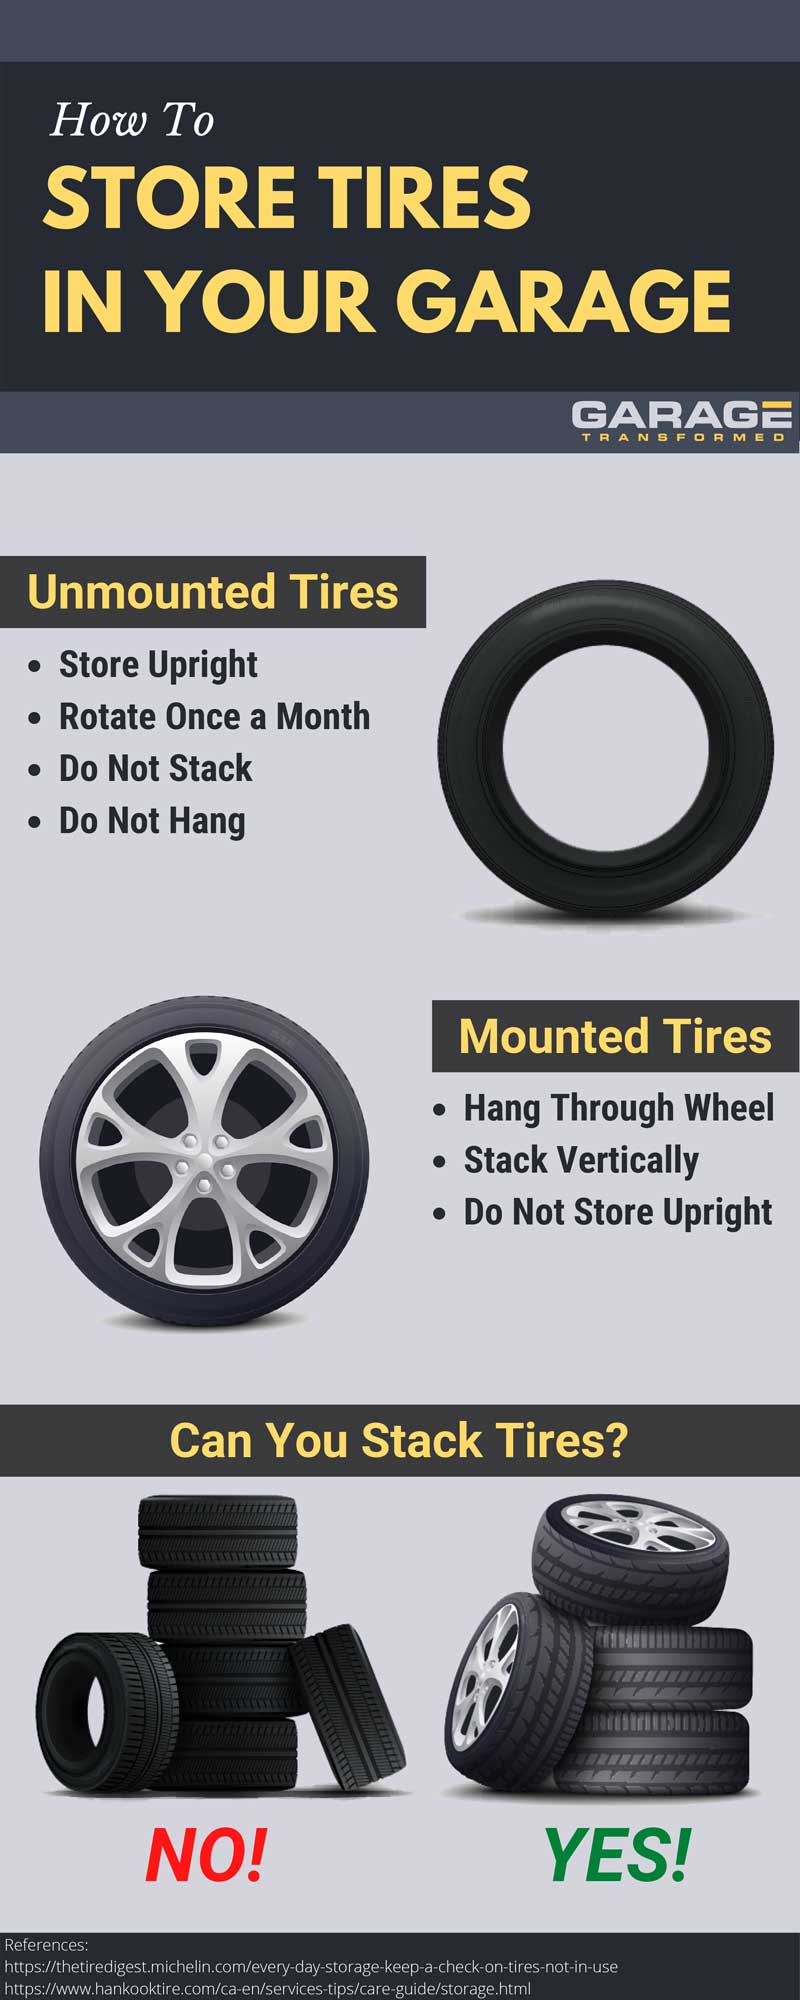 How to Store Tires in Your Garage Infographic